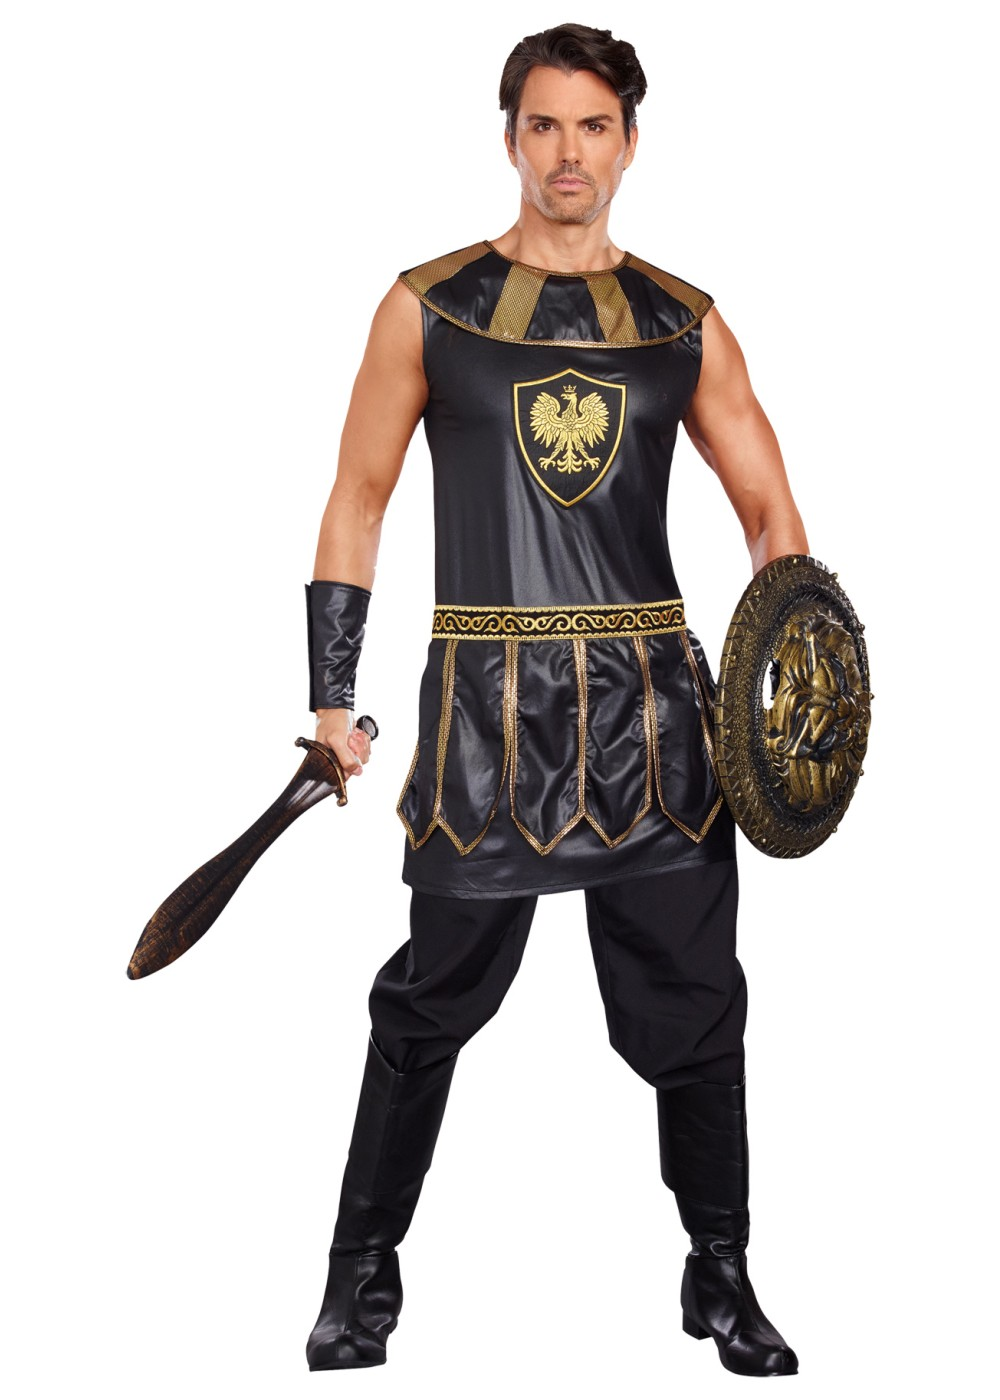 Deadly Warrior Men Costume  sc 1 st  Wonder Costumes & Roman Costumes - Girls Boys Men u0026 Women Classic Roman Dress